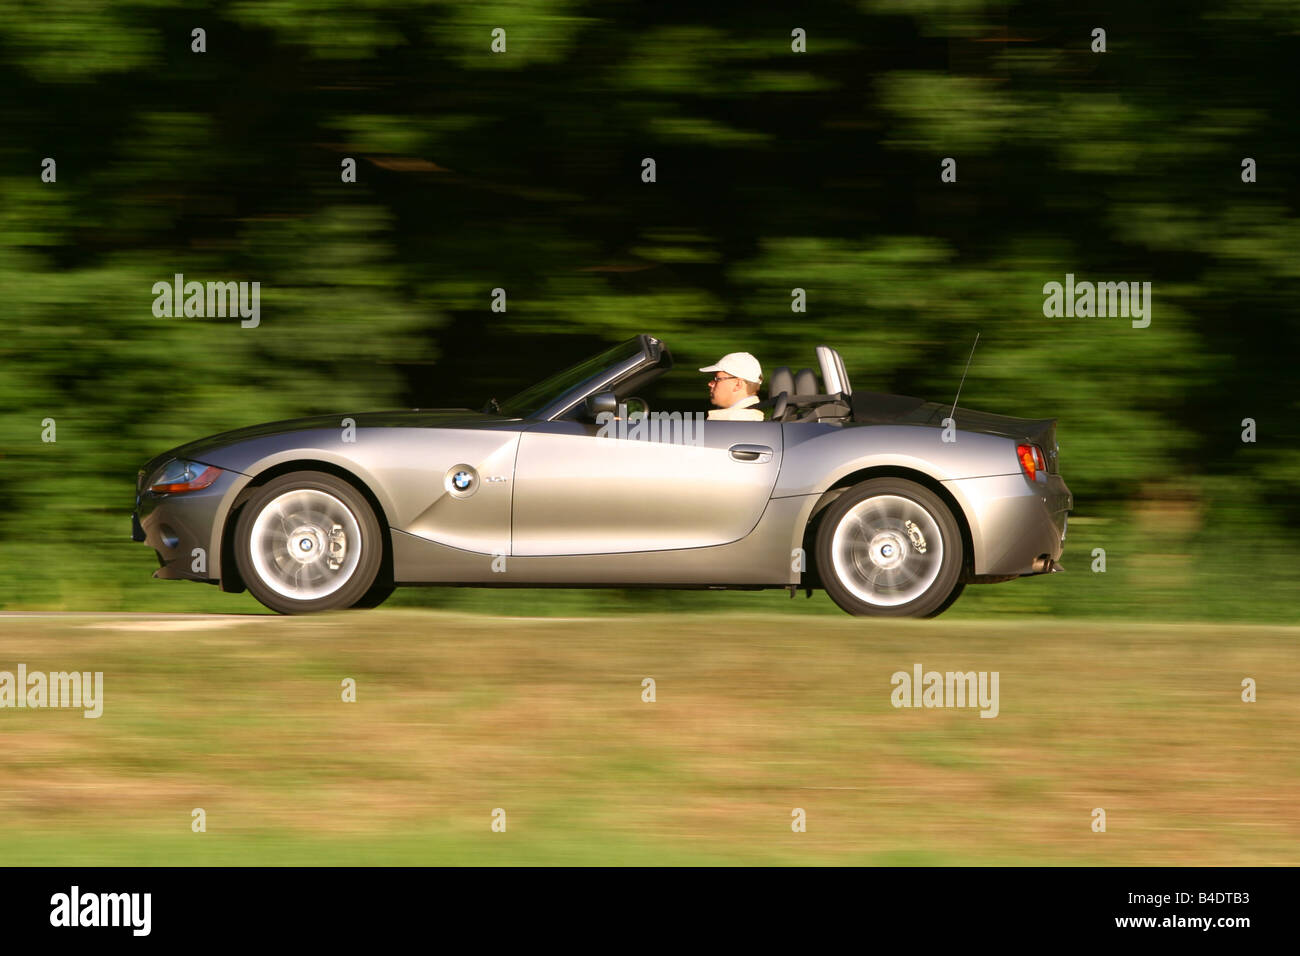 hight resolution of car bmw z4 3 0i roadster convertible 231 ps h chstgeschwindigkeit 250 km h model year 2003 silver anthracite driving op